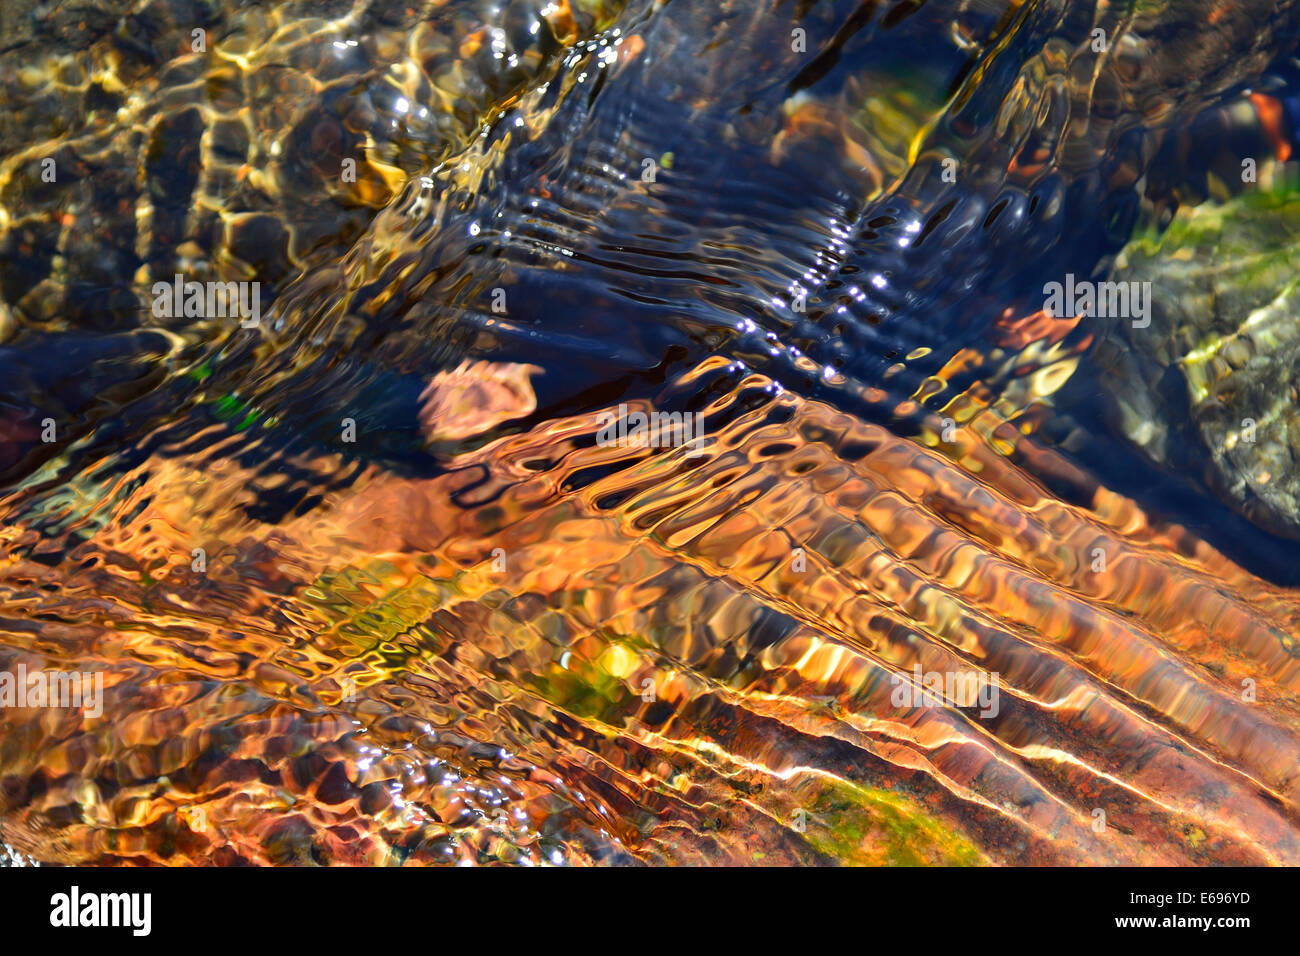 Reflections of colorful stones in the clear water of the Fango River, Fango Valley, Corsica, France - Stock Image